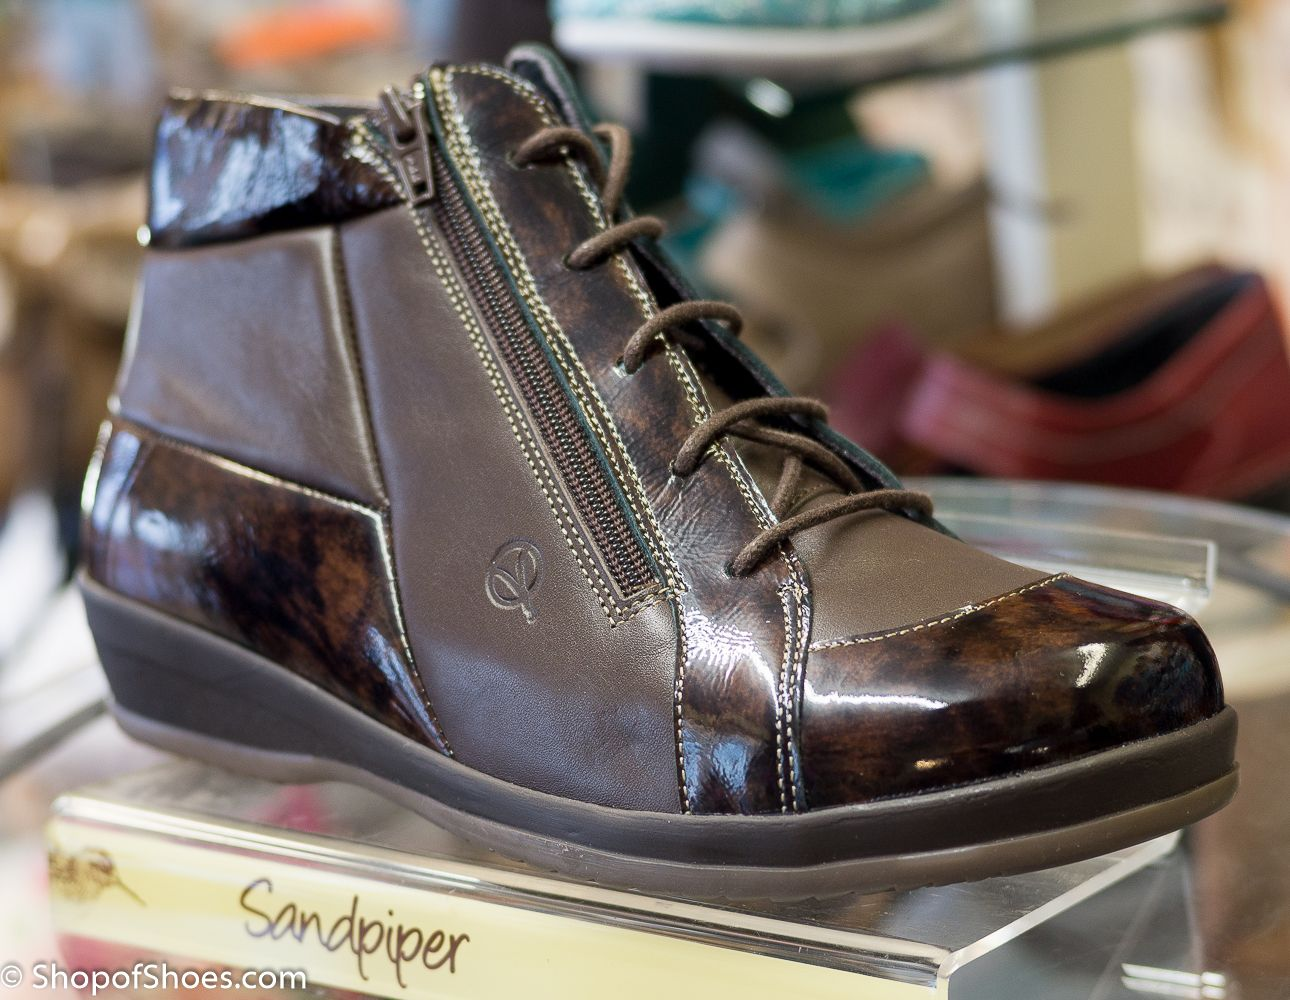 21bb58005a9 Sandpiper variable wide fit 4E-6E leather zip and laced boot with twin zip  for extra easy access. Available from our shop now on the Hampshire  Berkshire ...